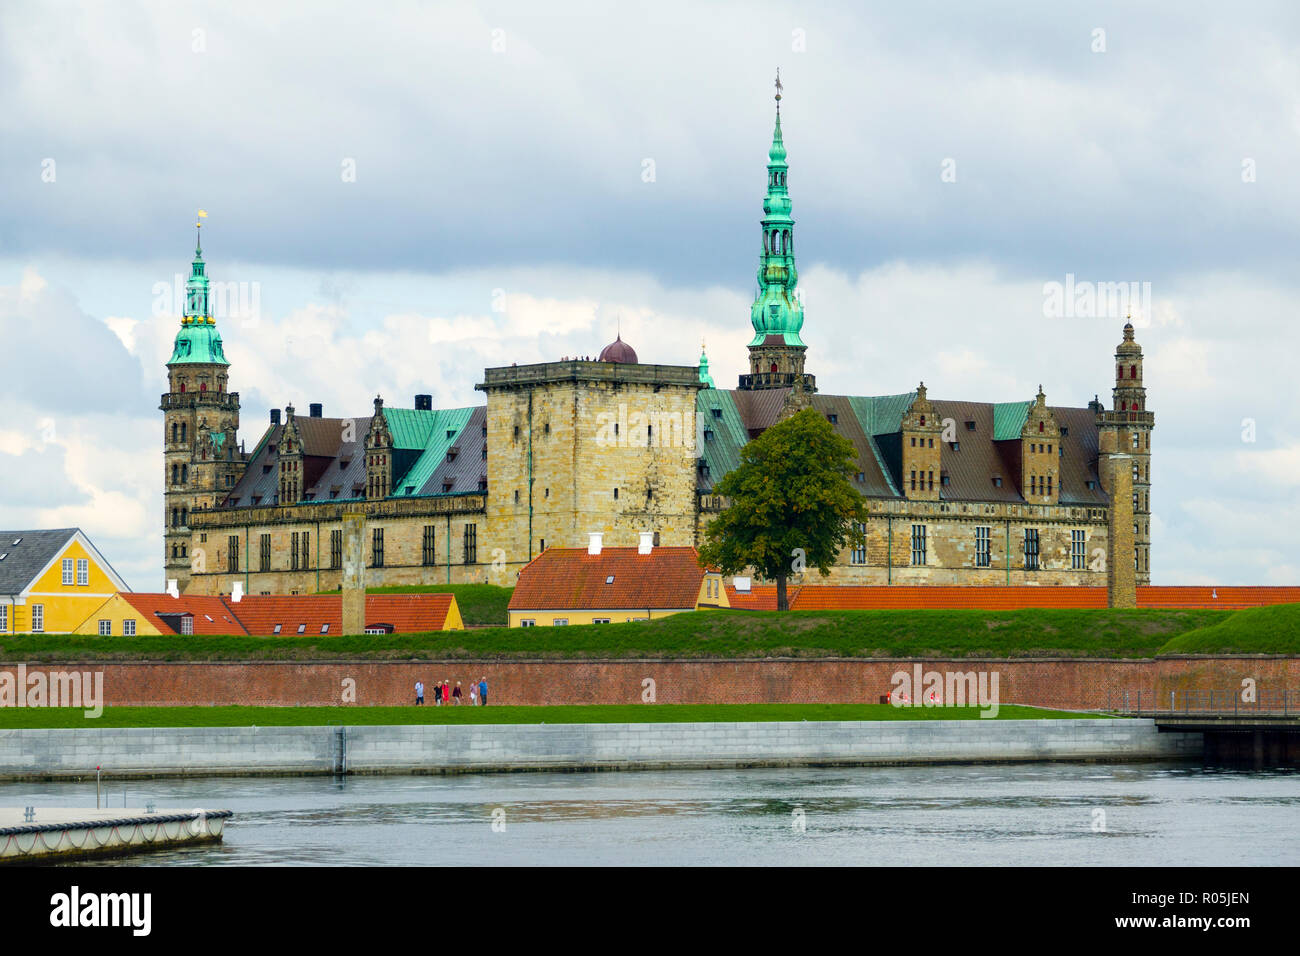 Kronborg Castle and fortification at Helsingor also known as Elsinore in eastern Denmark - Stock Image